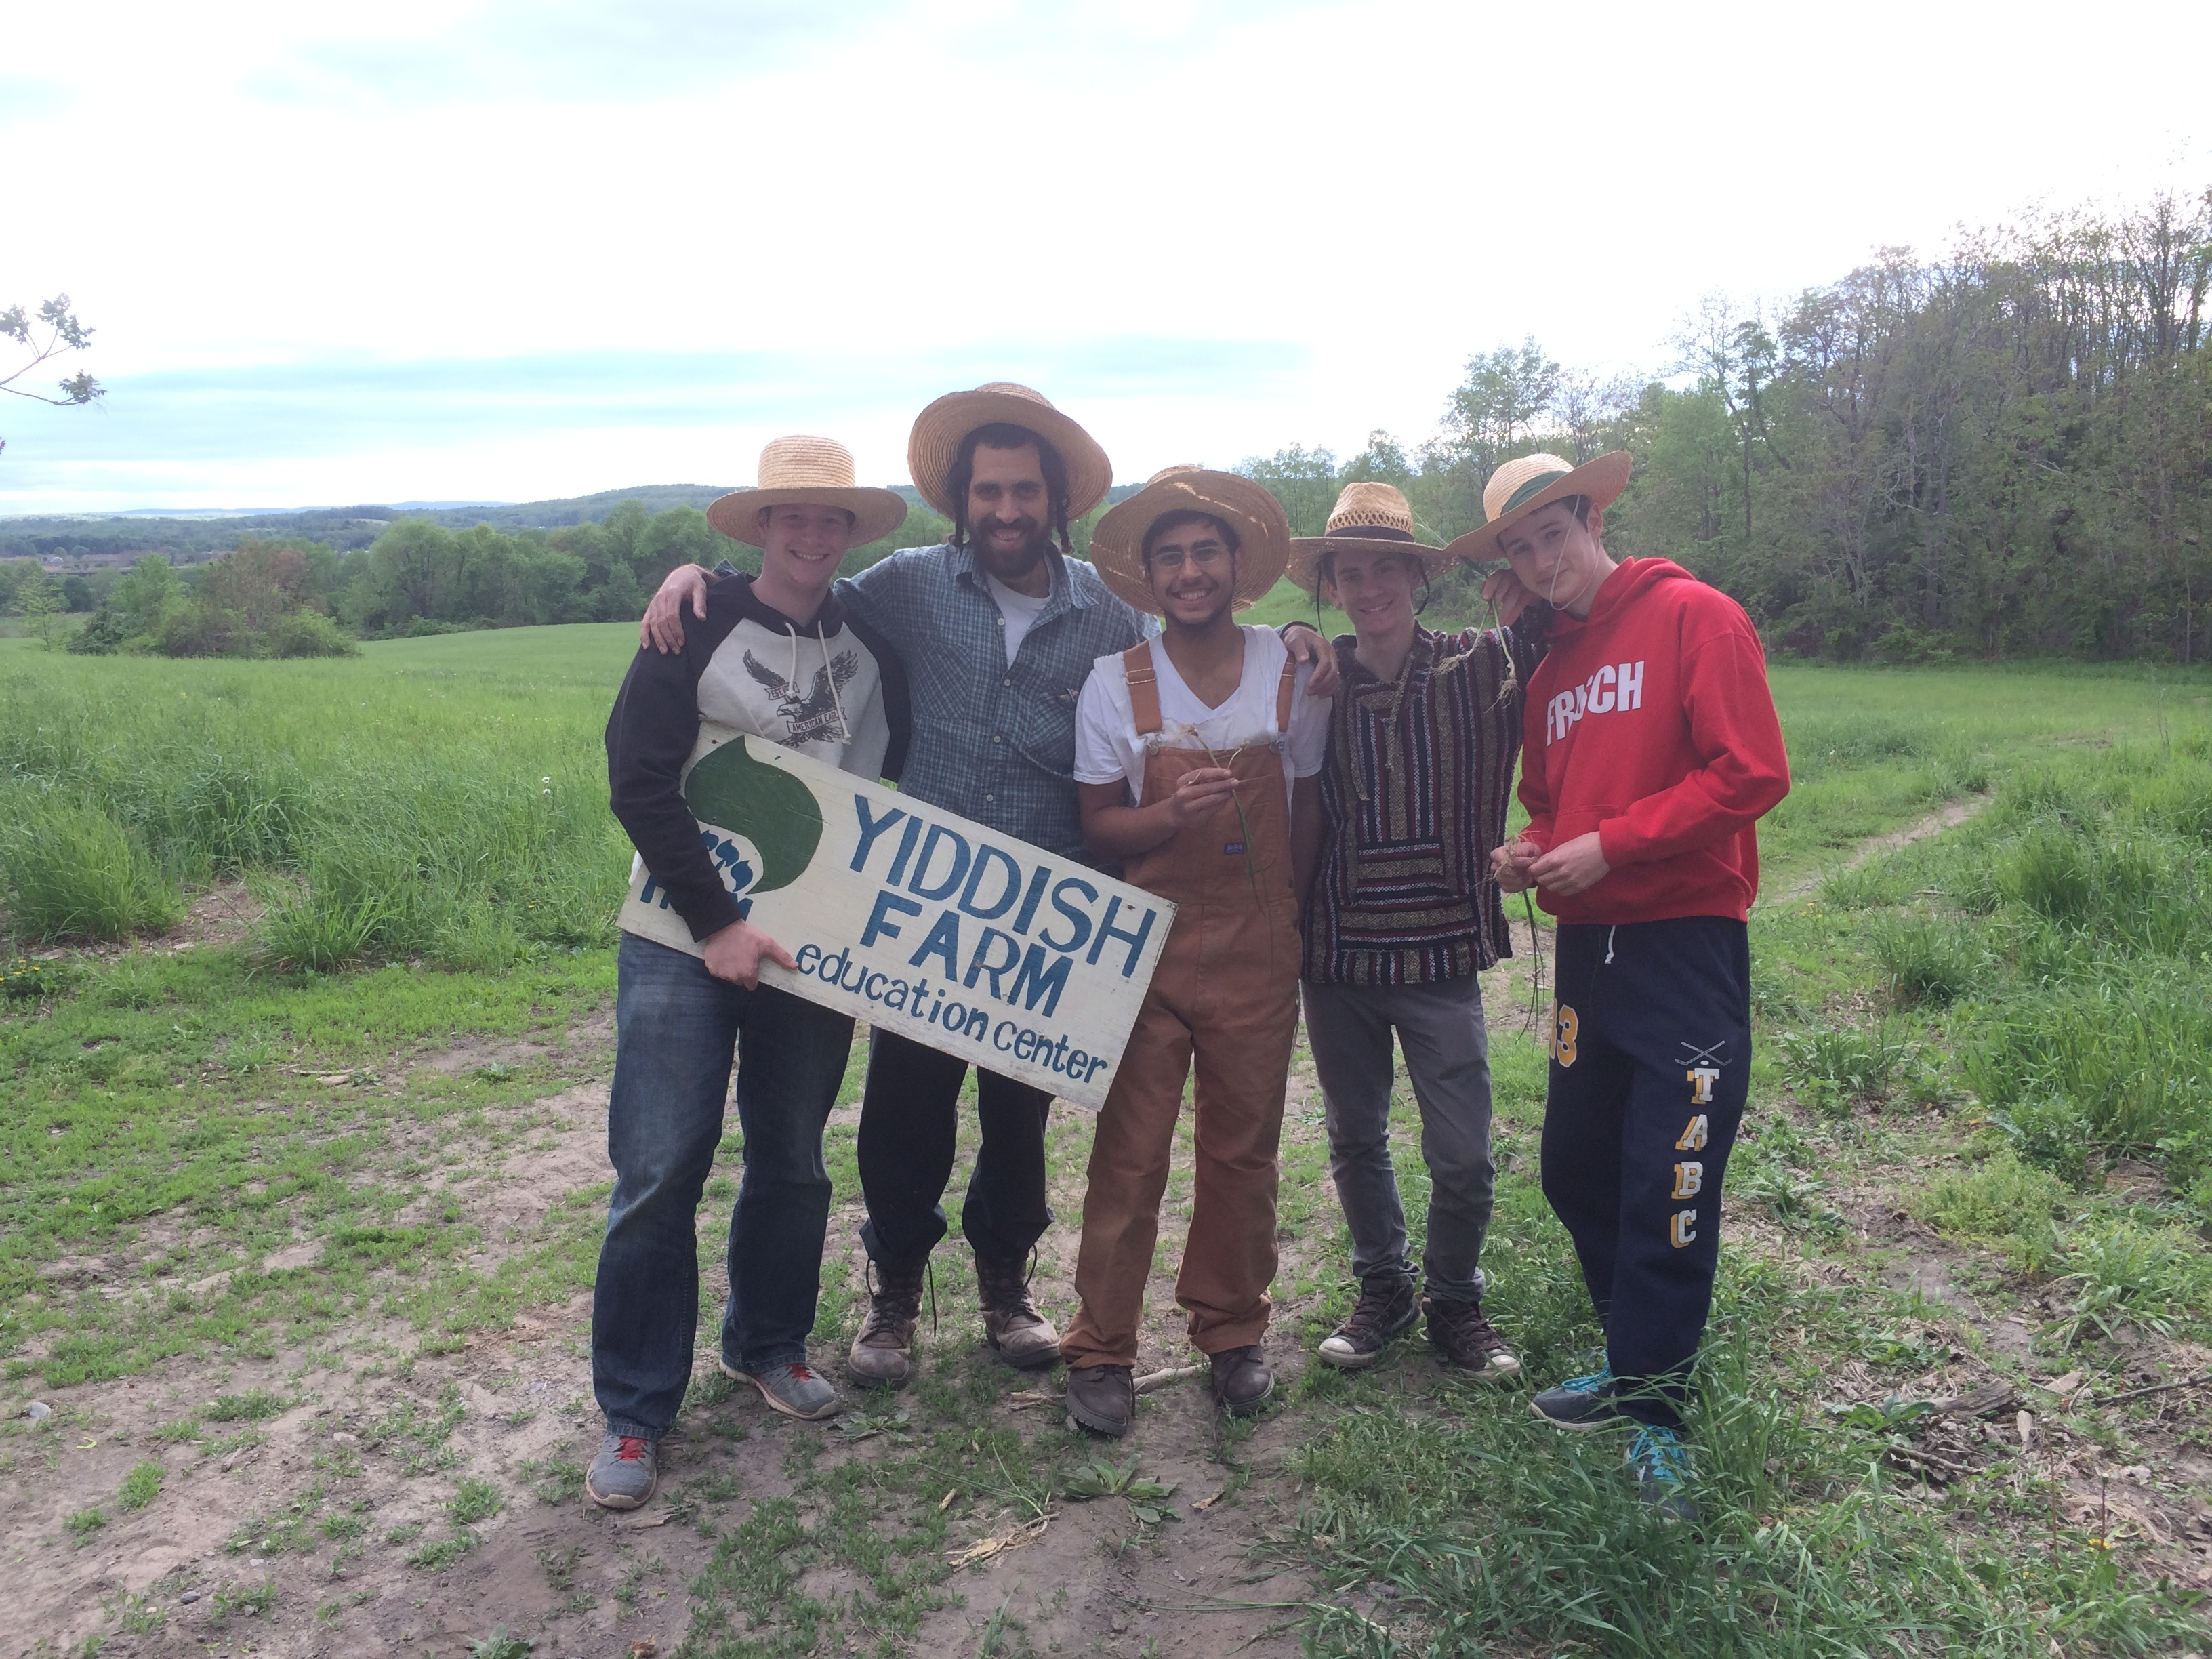 <p>Participants at the Yiddish Farm (Goshen,&nbsp;2017)</p>